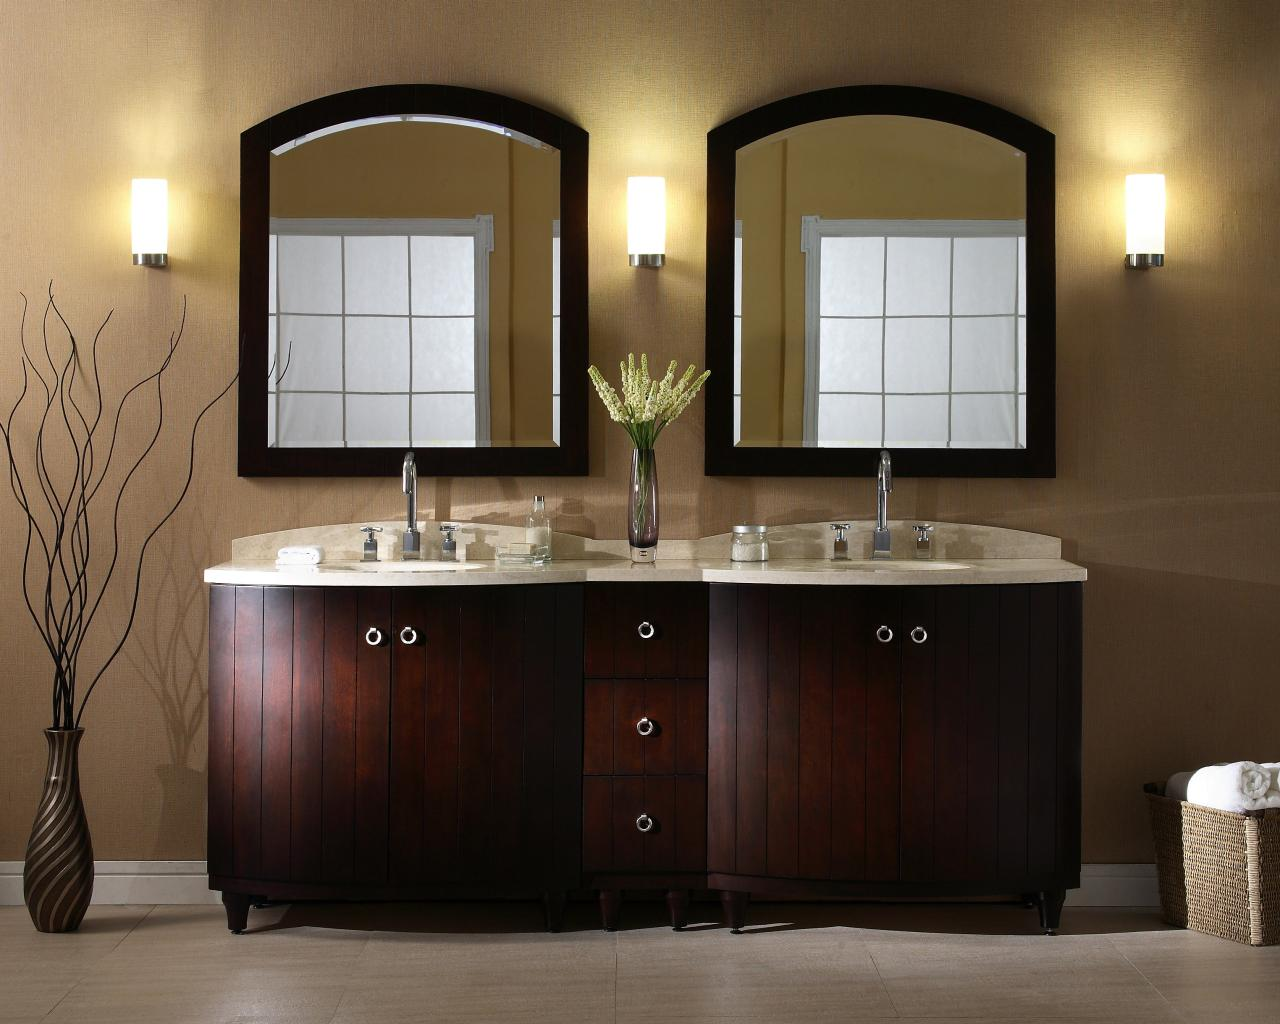 Choosing a bathroom vanity hgtv for Bathroom ideas vanity